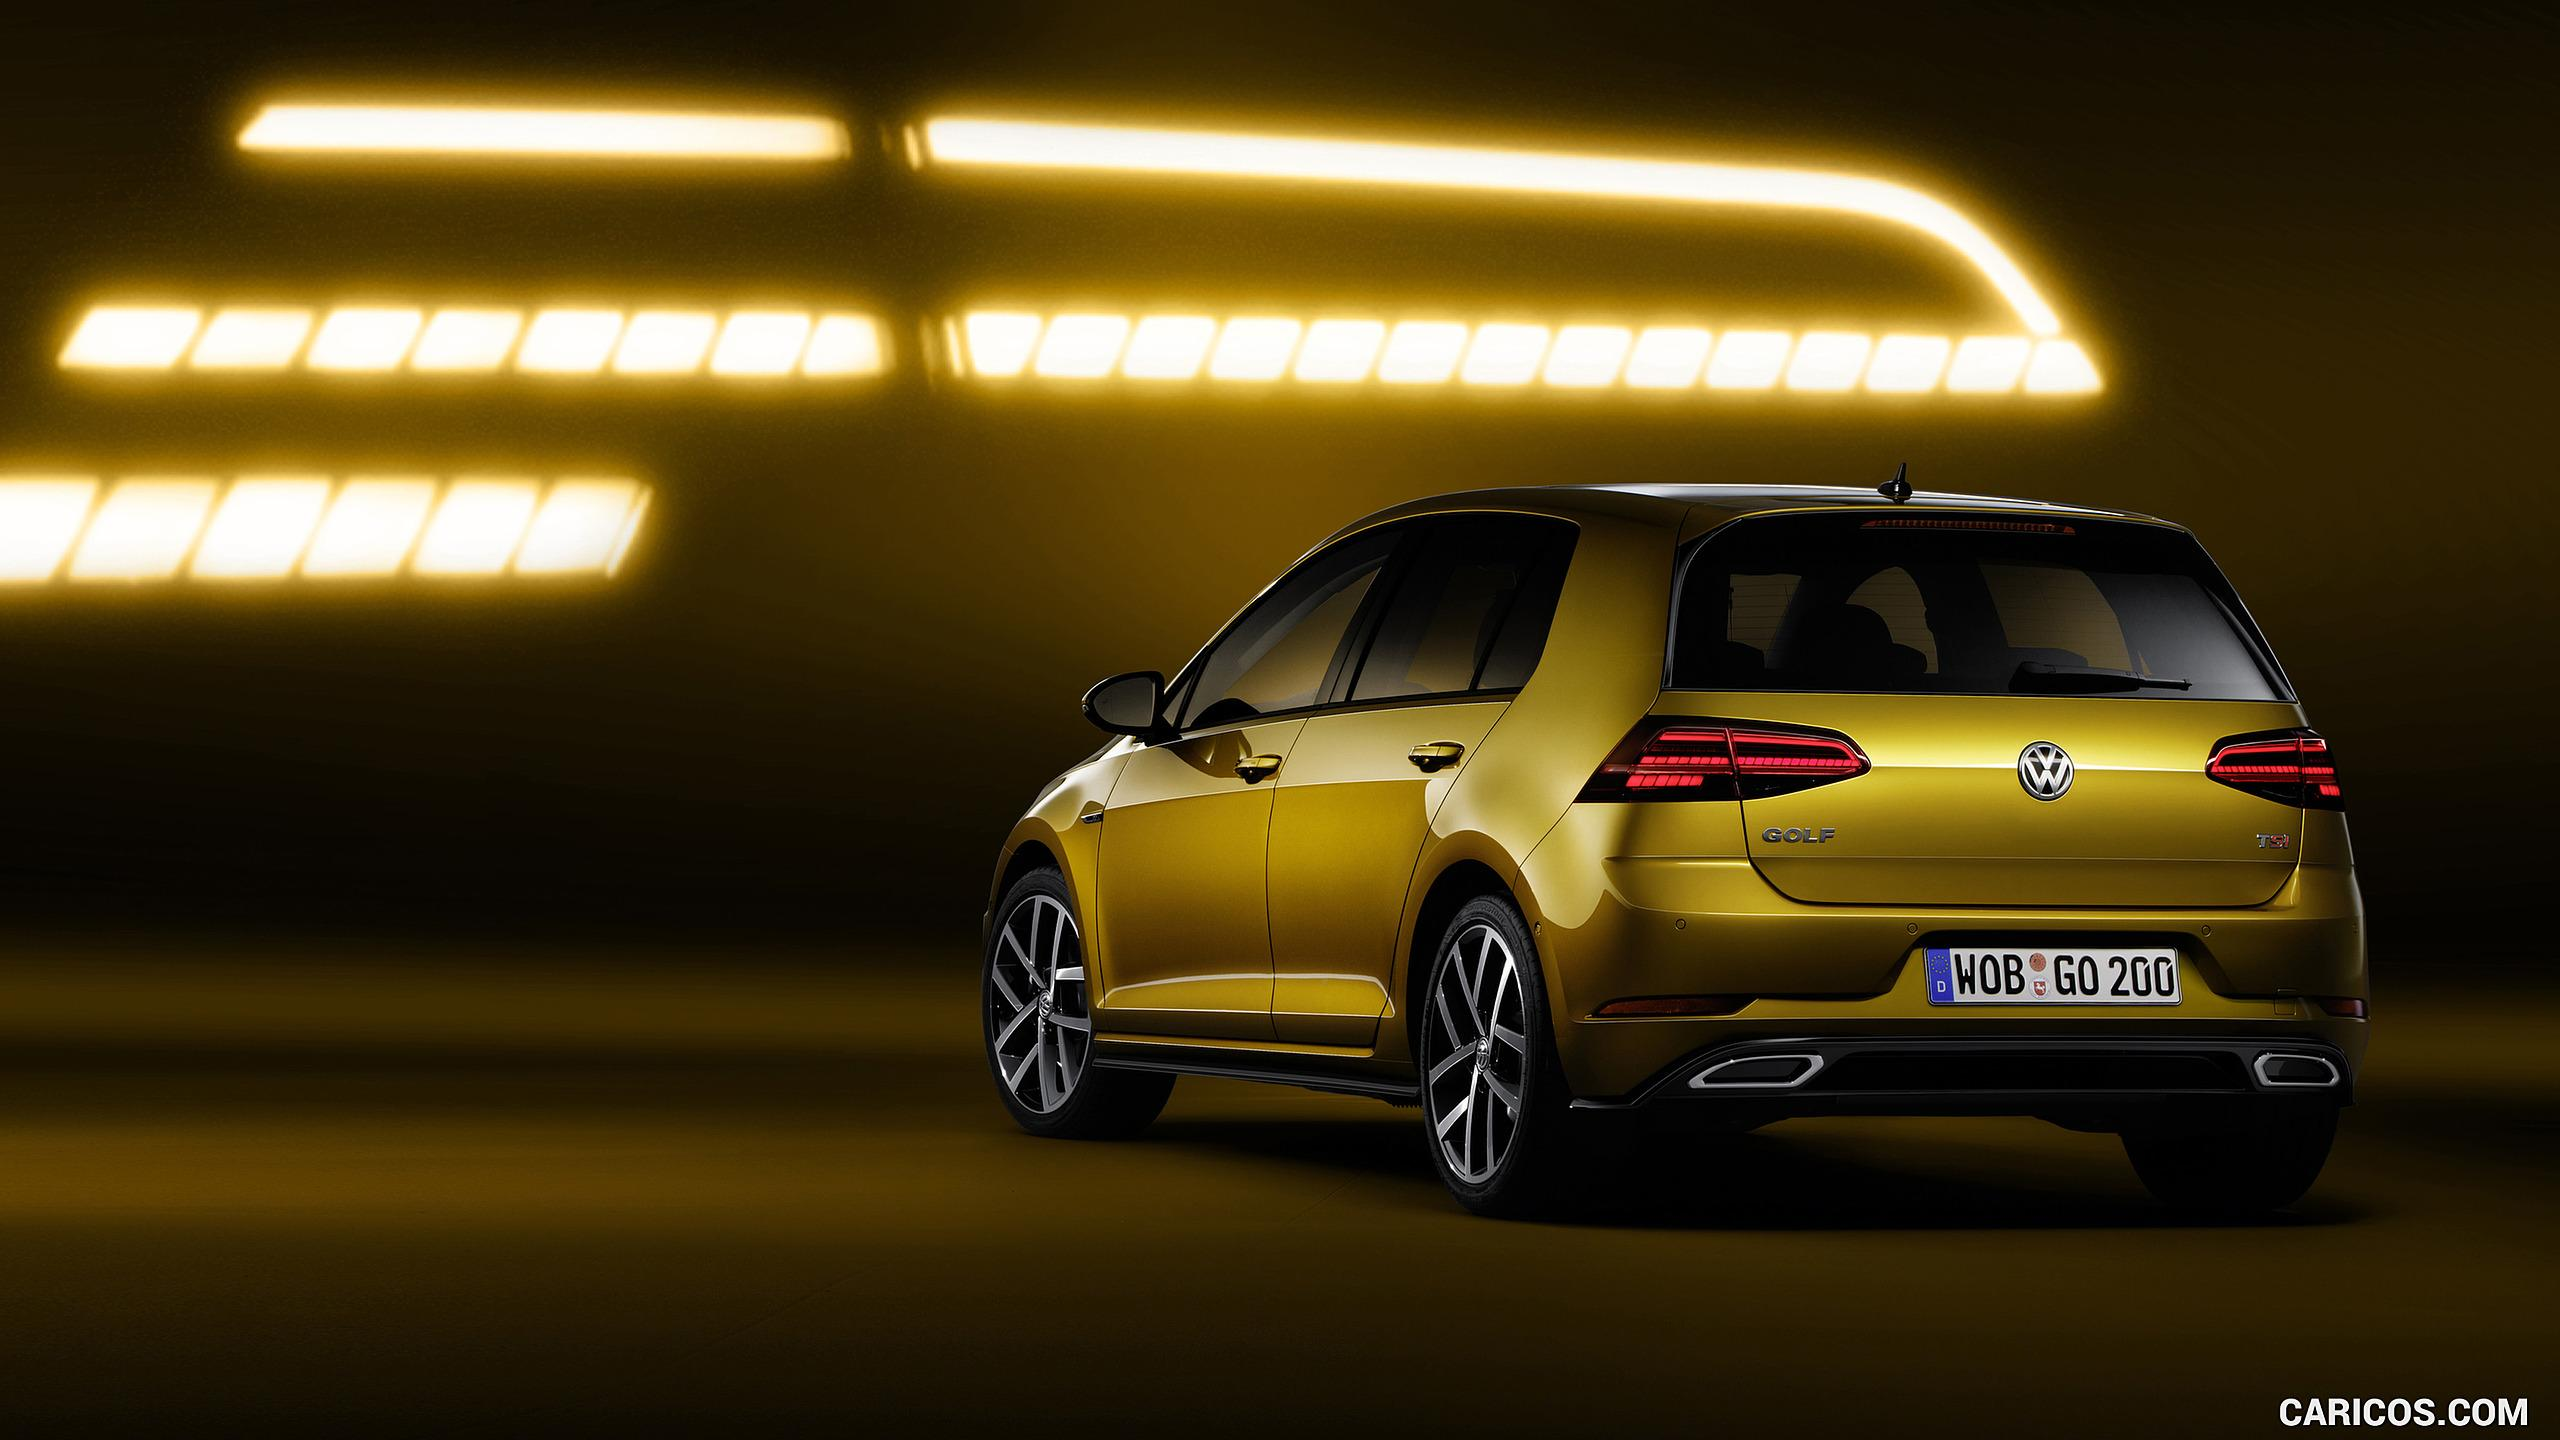 Vw Golf Wallpapers Wallpaper Cave